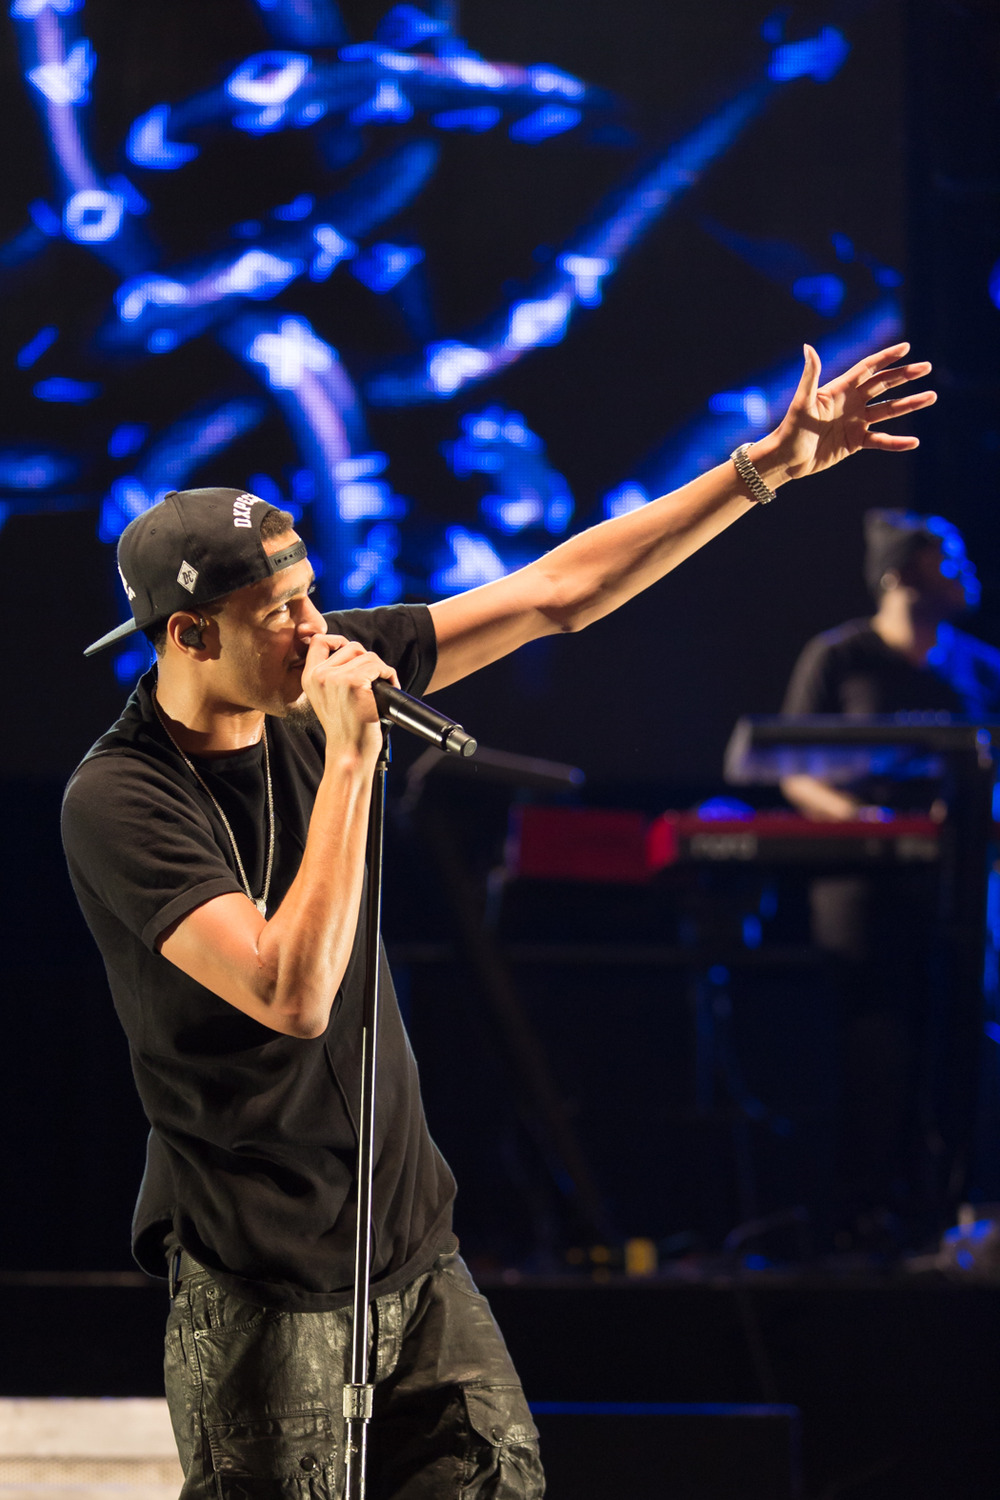 Photo of J. Cole captured at DAR Constitution Hall on January 30, 2014.